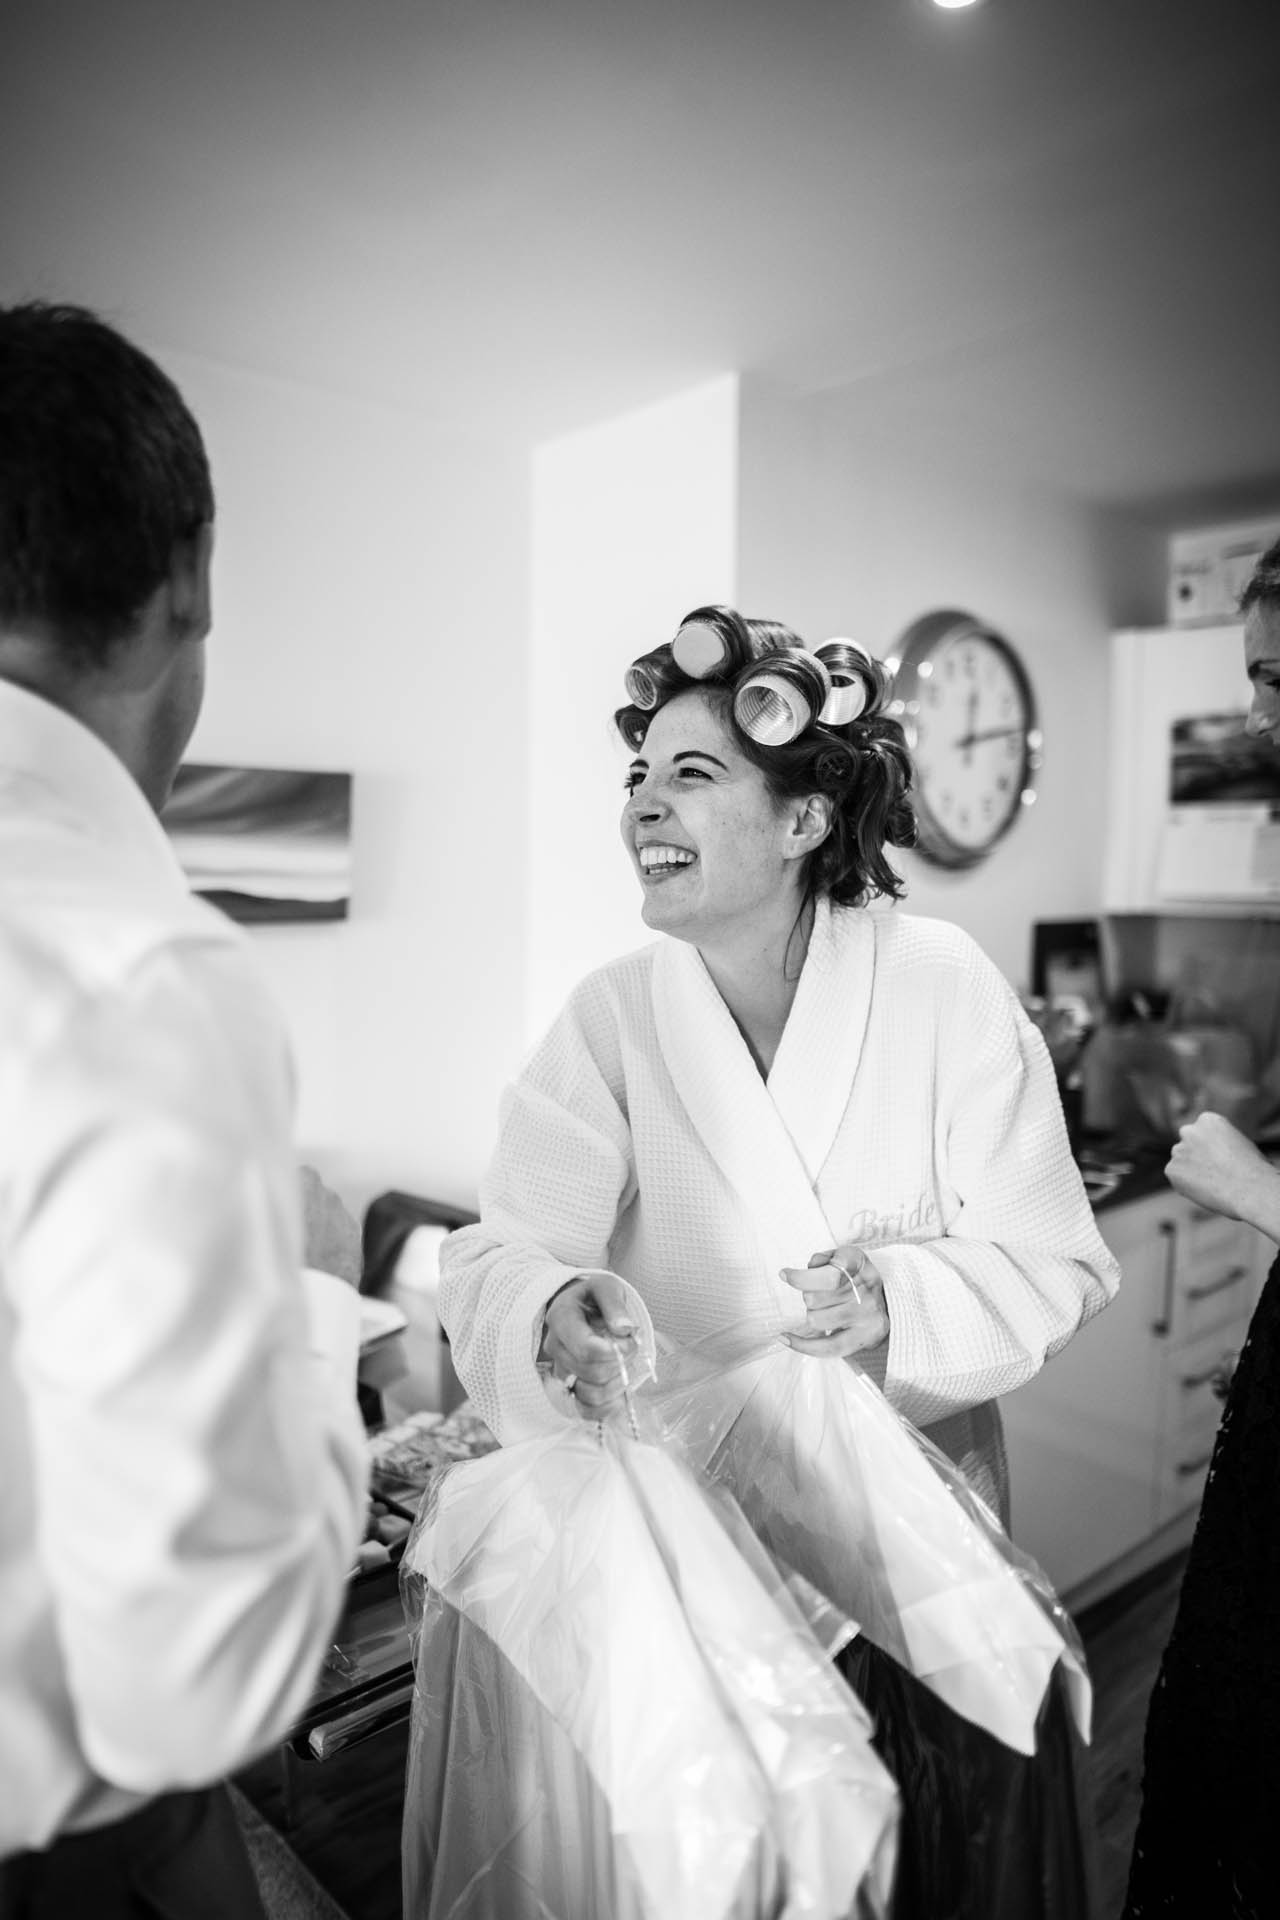 Battersea, London Elopement Image | The happy bride walks around in hair curlers